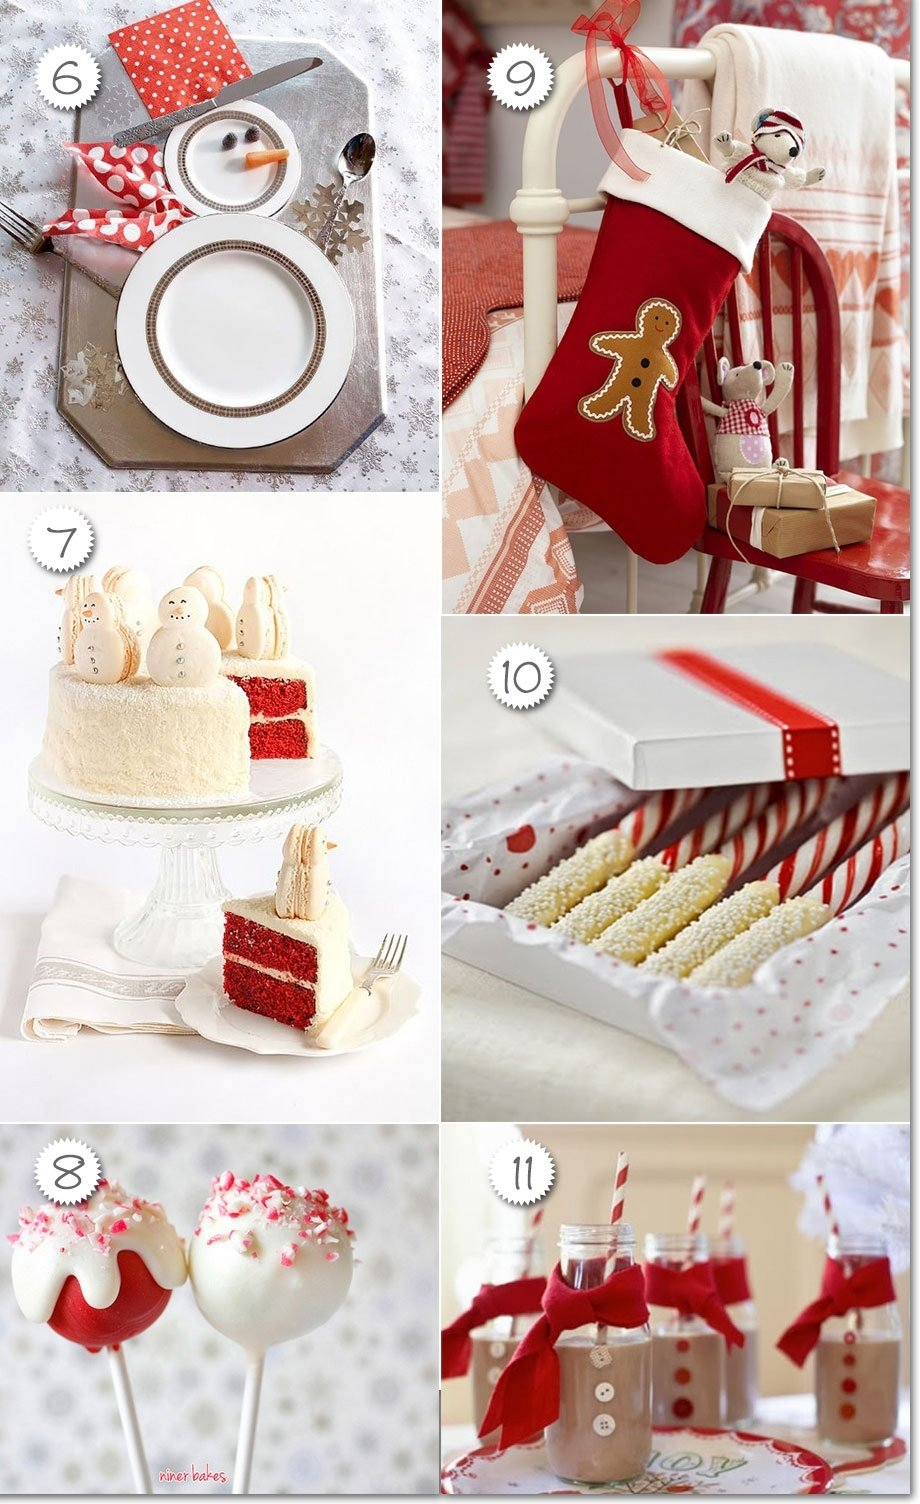 10 Attractive Winter Party Ideas For Kids winter wonderland party ideas for kids